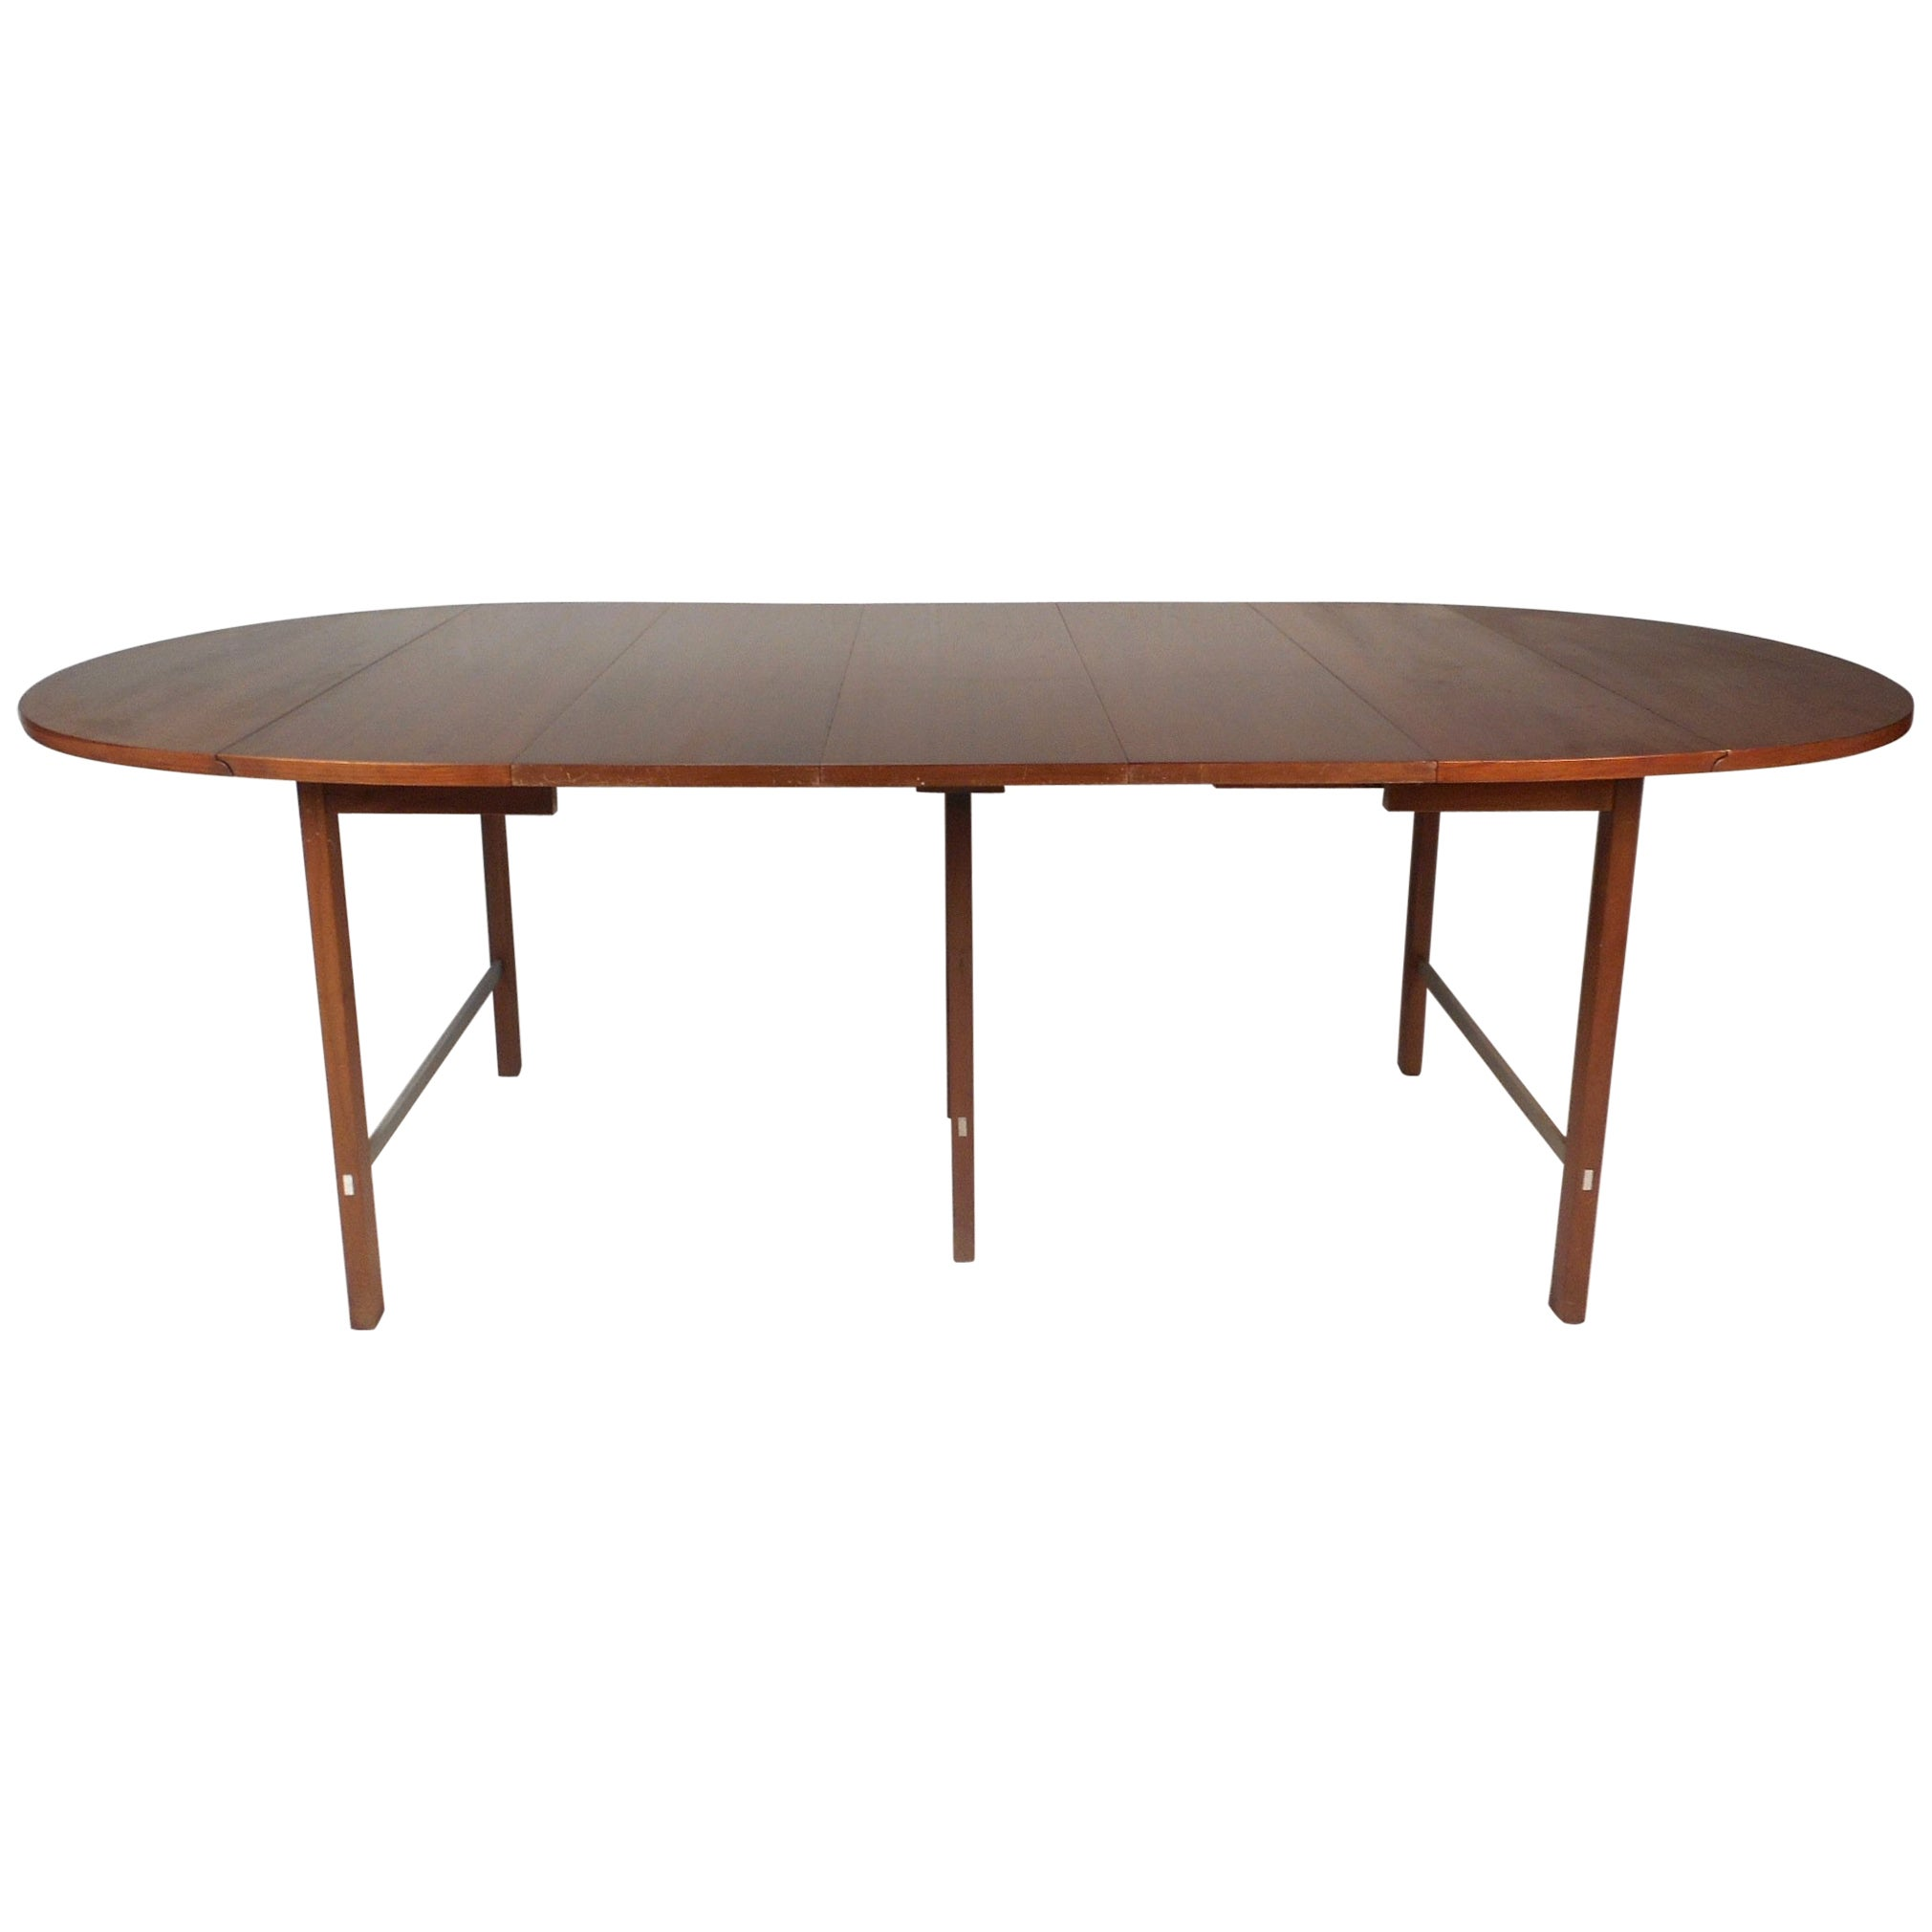 Mid-Century Modern Expandable Drop-Leaf Dining Table by Paul McCobb